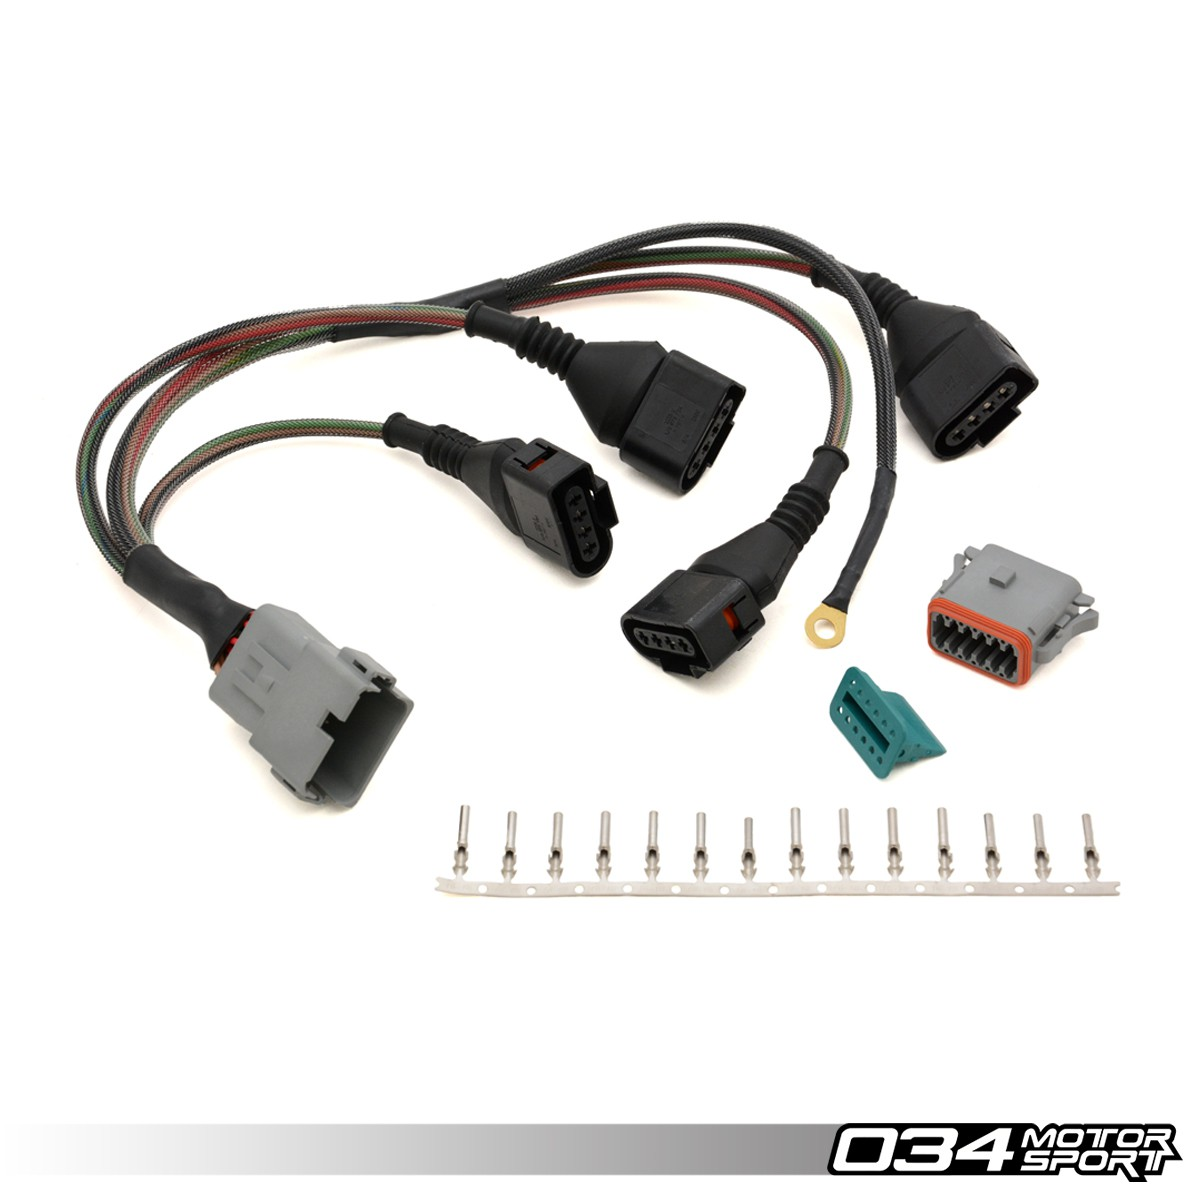 repair update harness audi volkswagen 18t with 4 wire coils 034motorsport 034 701 0004 2 repair update harness, audi volkswagen 1 8t with 4 wire coils wiring harness repair connectors at reclaimingppi.co